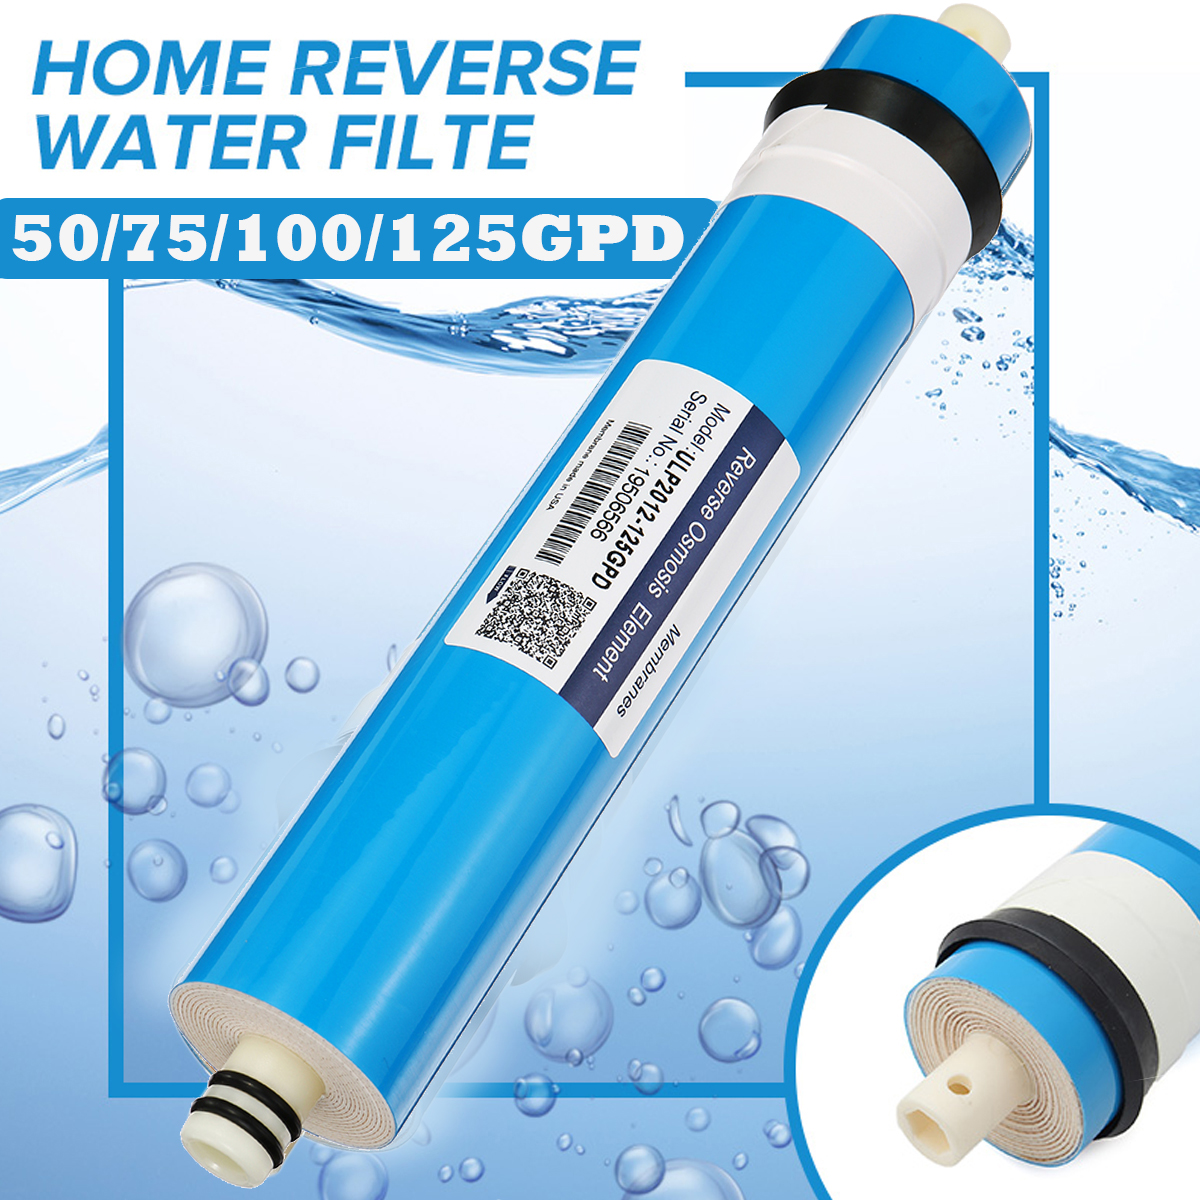 Home Kitchen Reverse Osmosis RO Membrane Replacement Water Filter System Household Water Purifying Filtration 50/75/100/125GPD